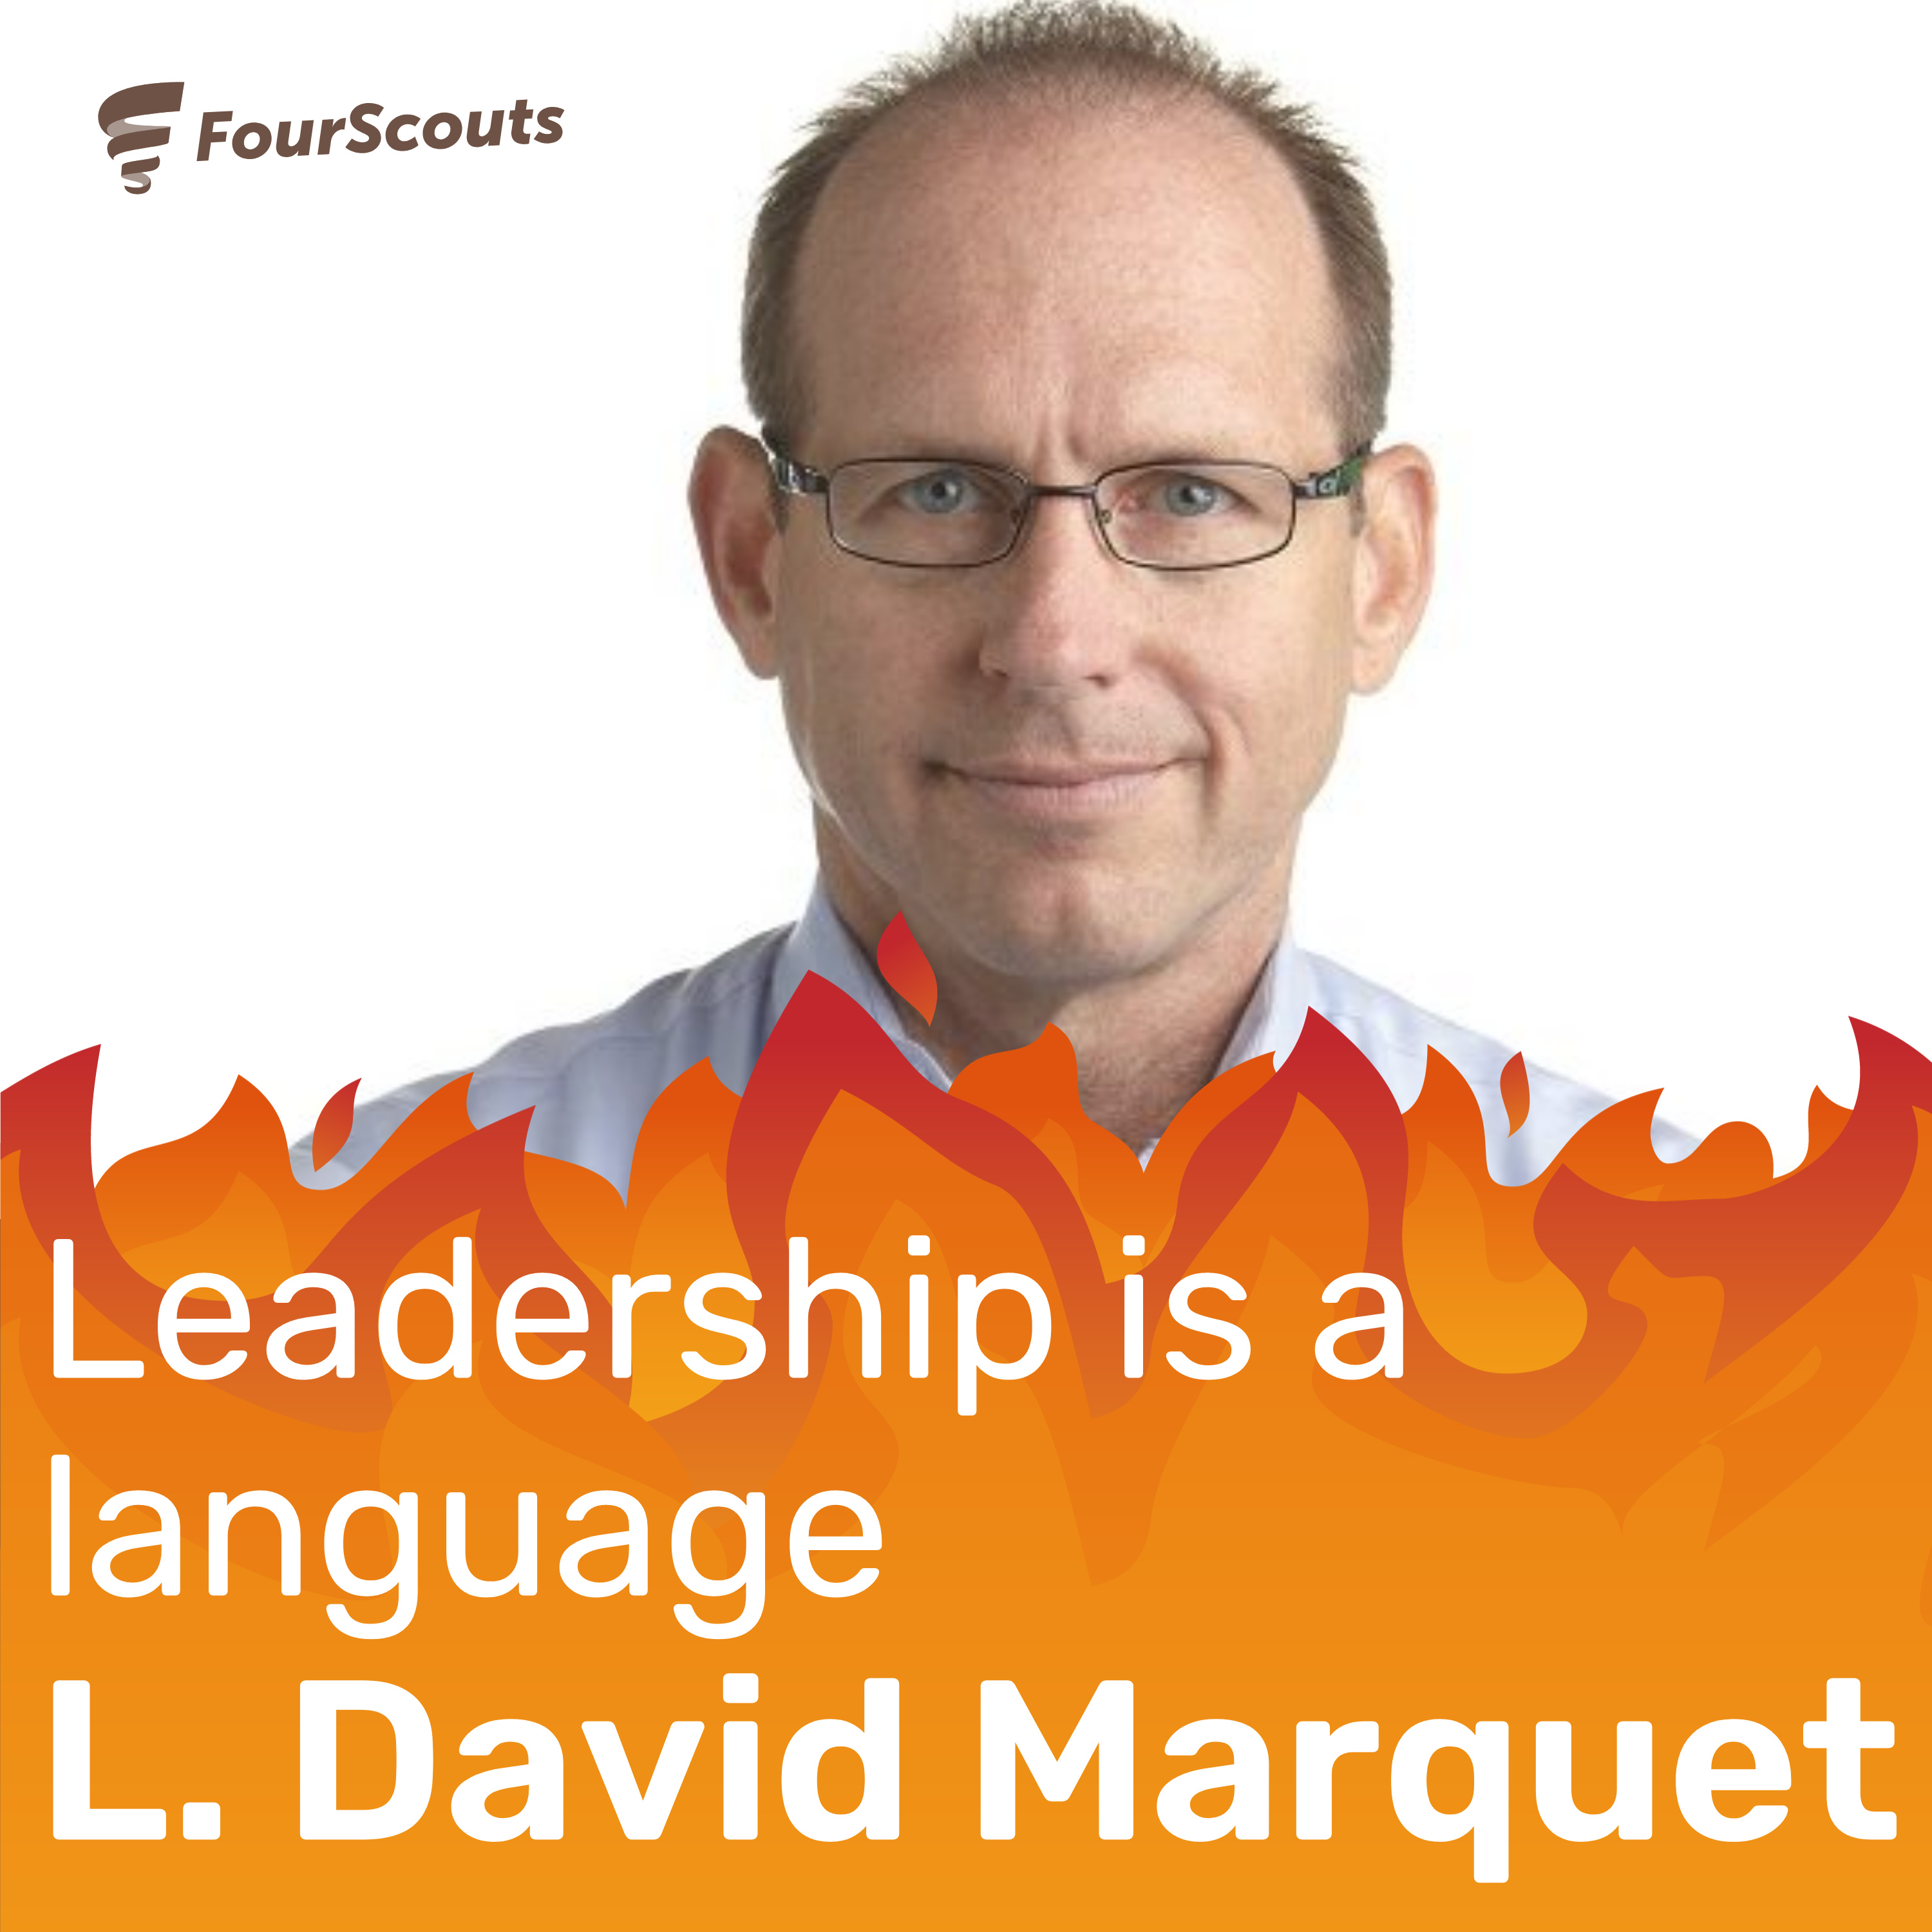 Leadership is a language with L. David Marquet